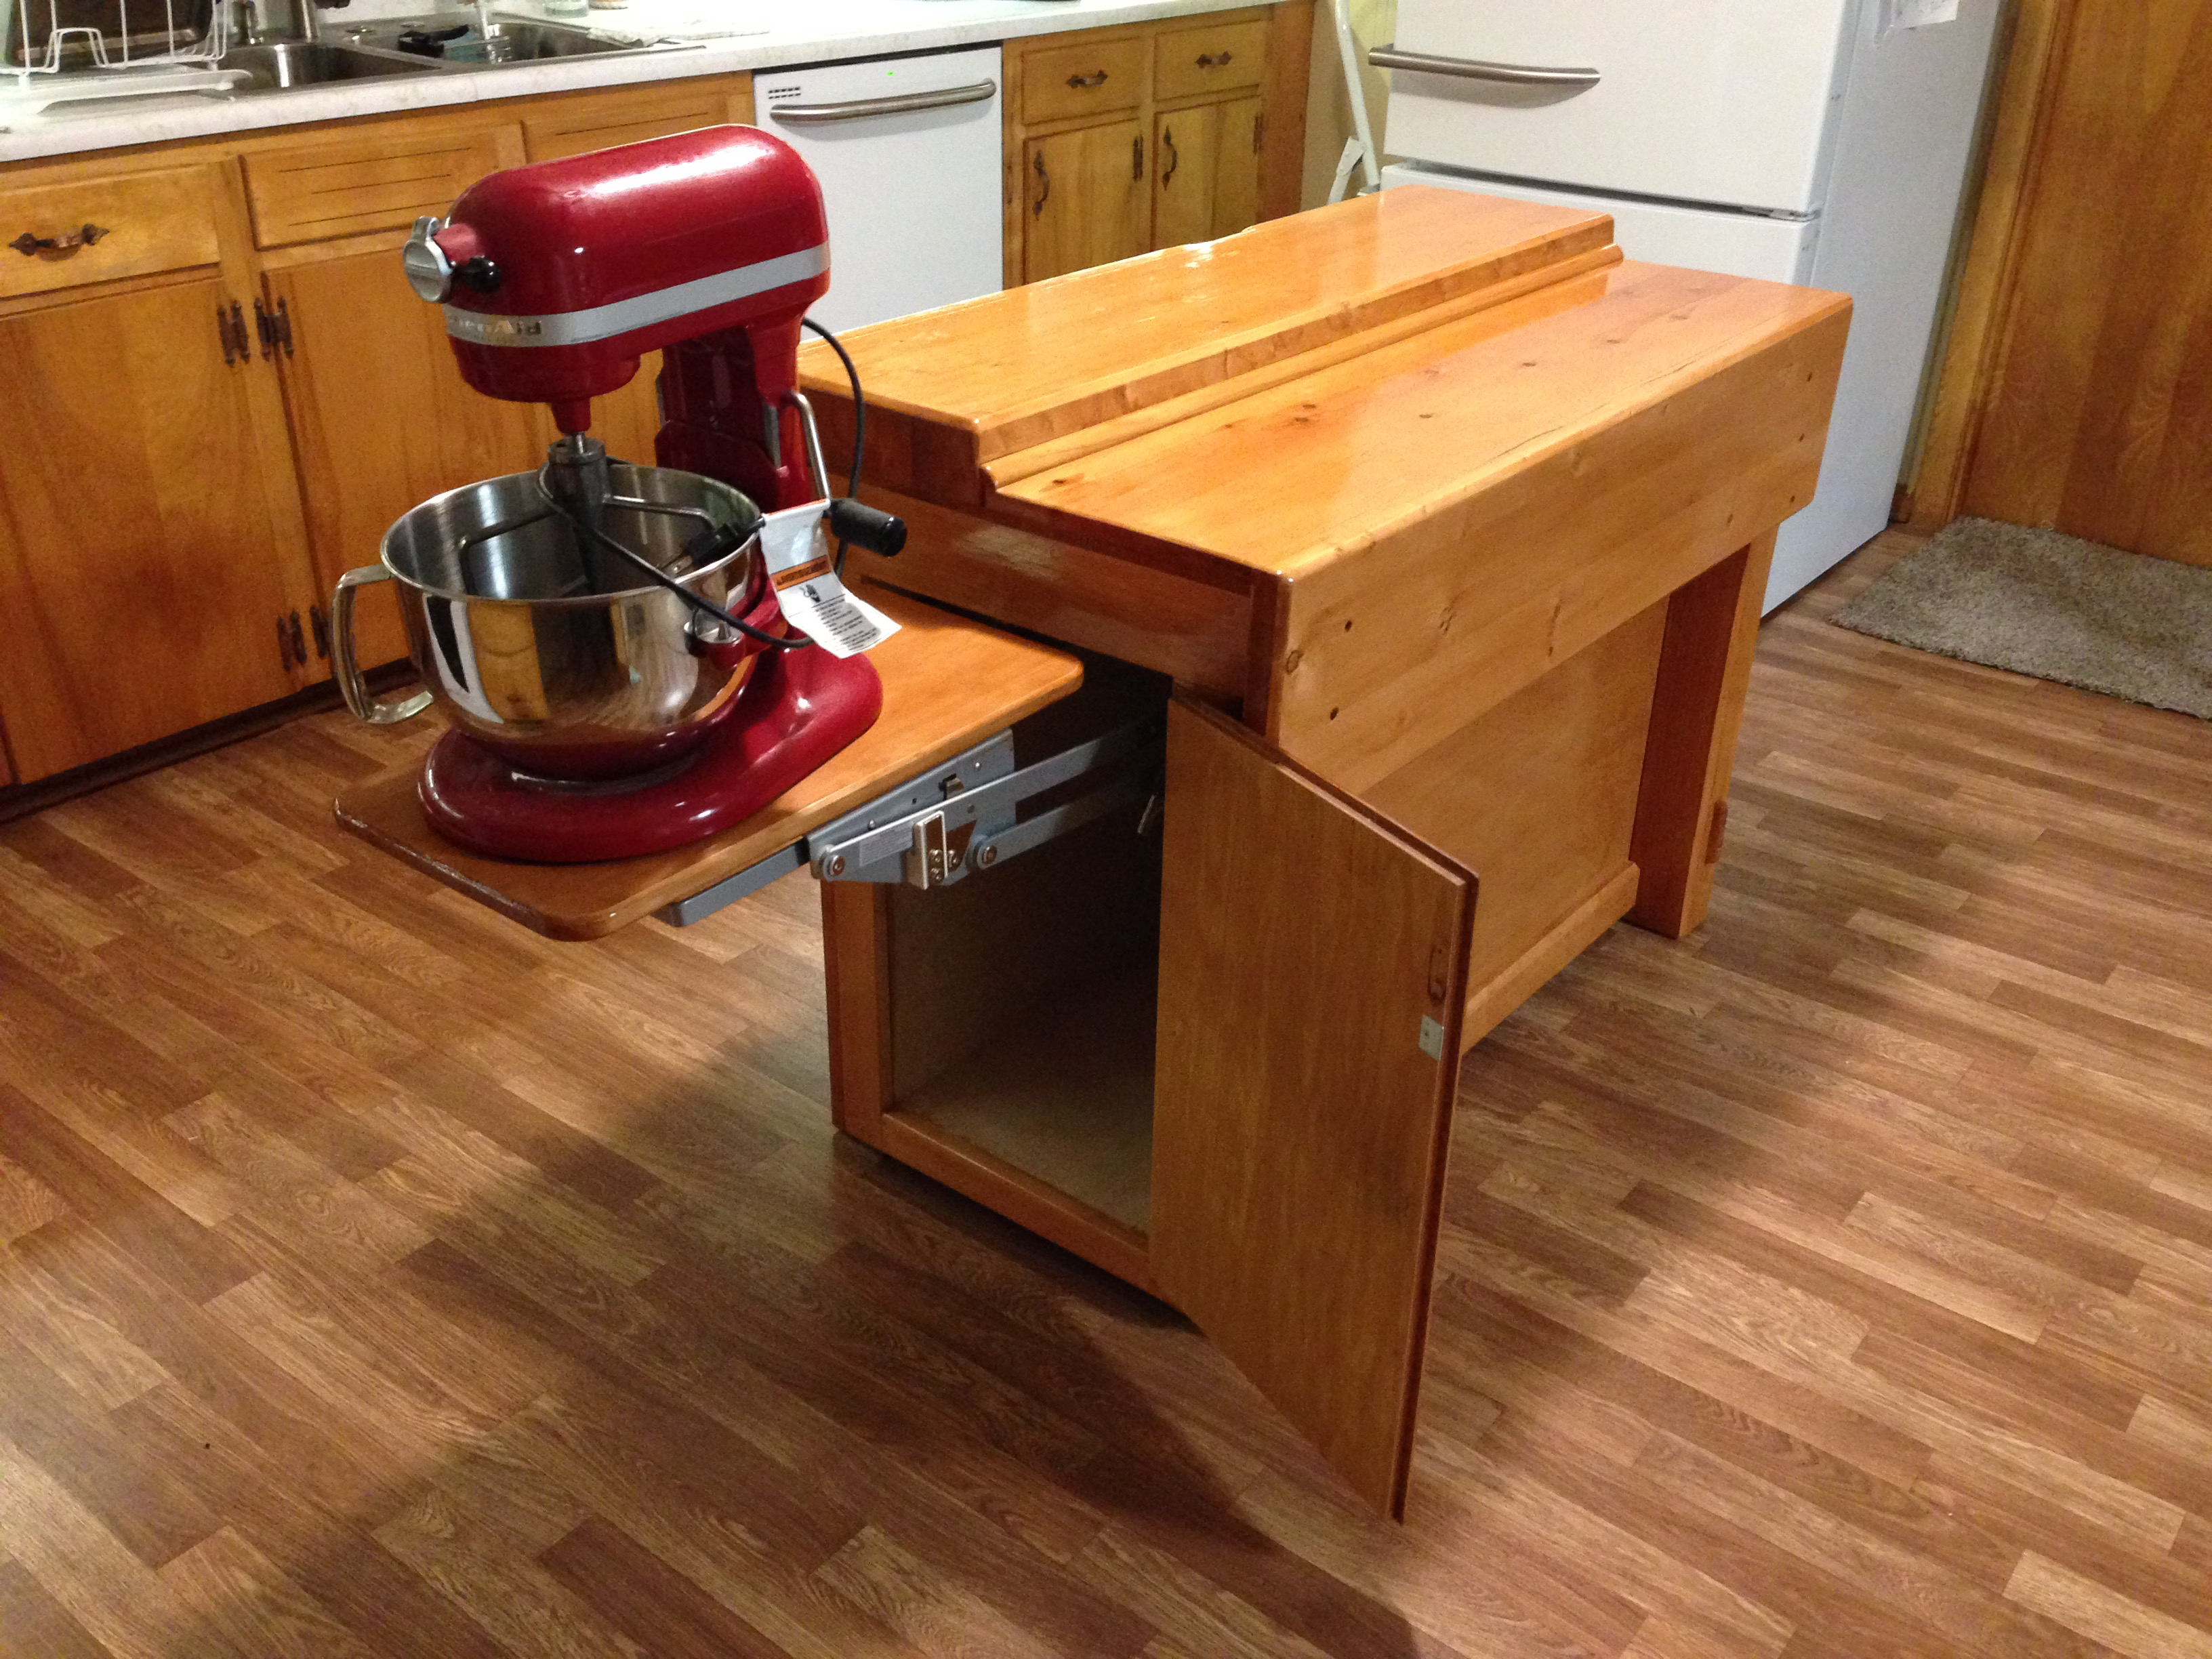 Kitchen Island Converted Into A Workbench Open Shelves Kitchen Island Basement Kitchen Island